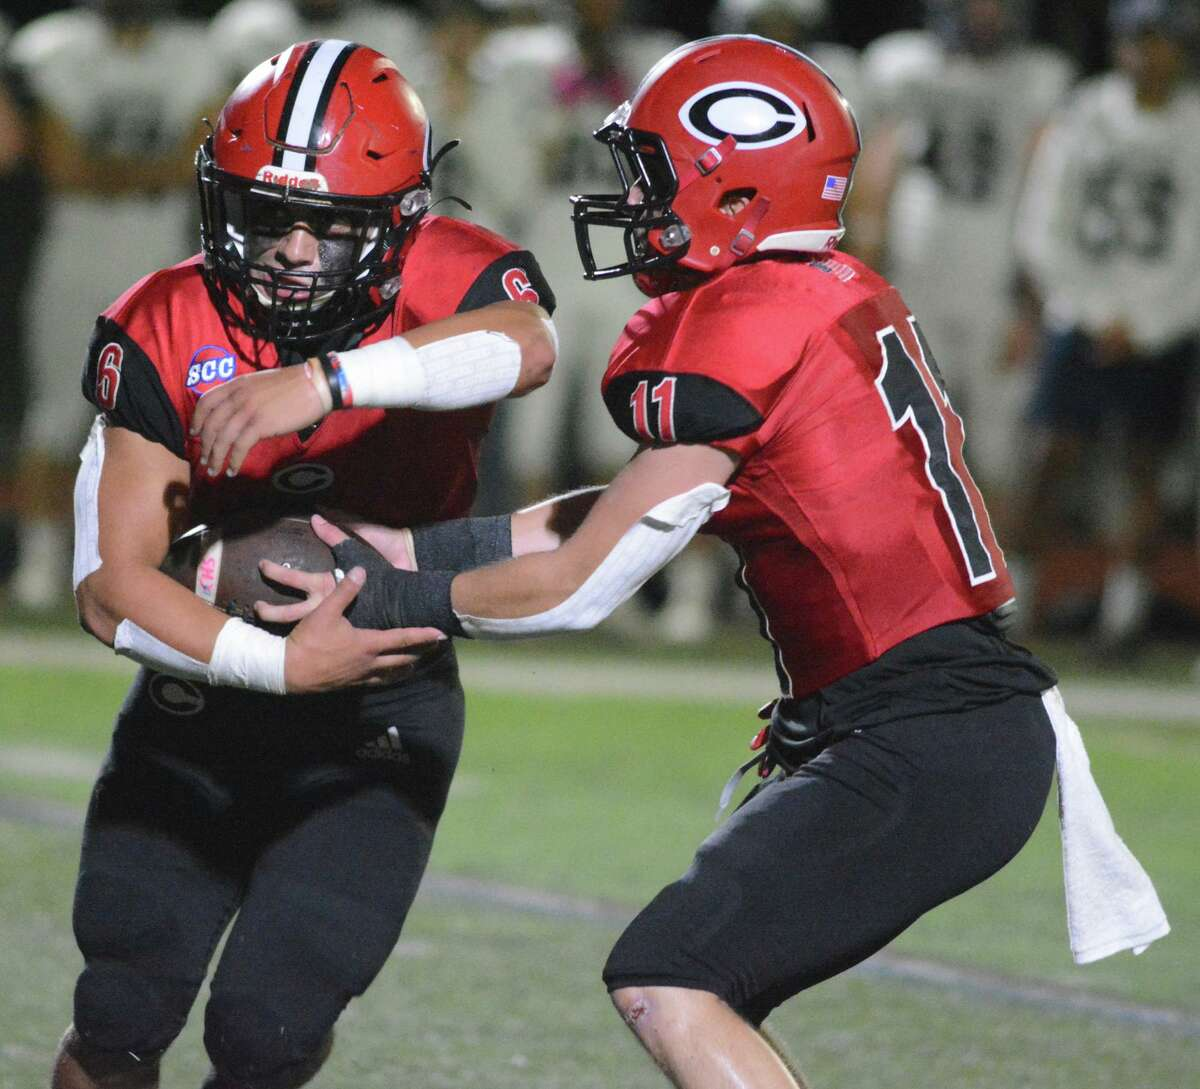 Christian Russo of Cheshire takes the handoff from quarterback Mike Simeone during a football game on Friday.